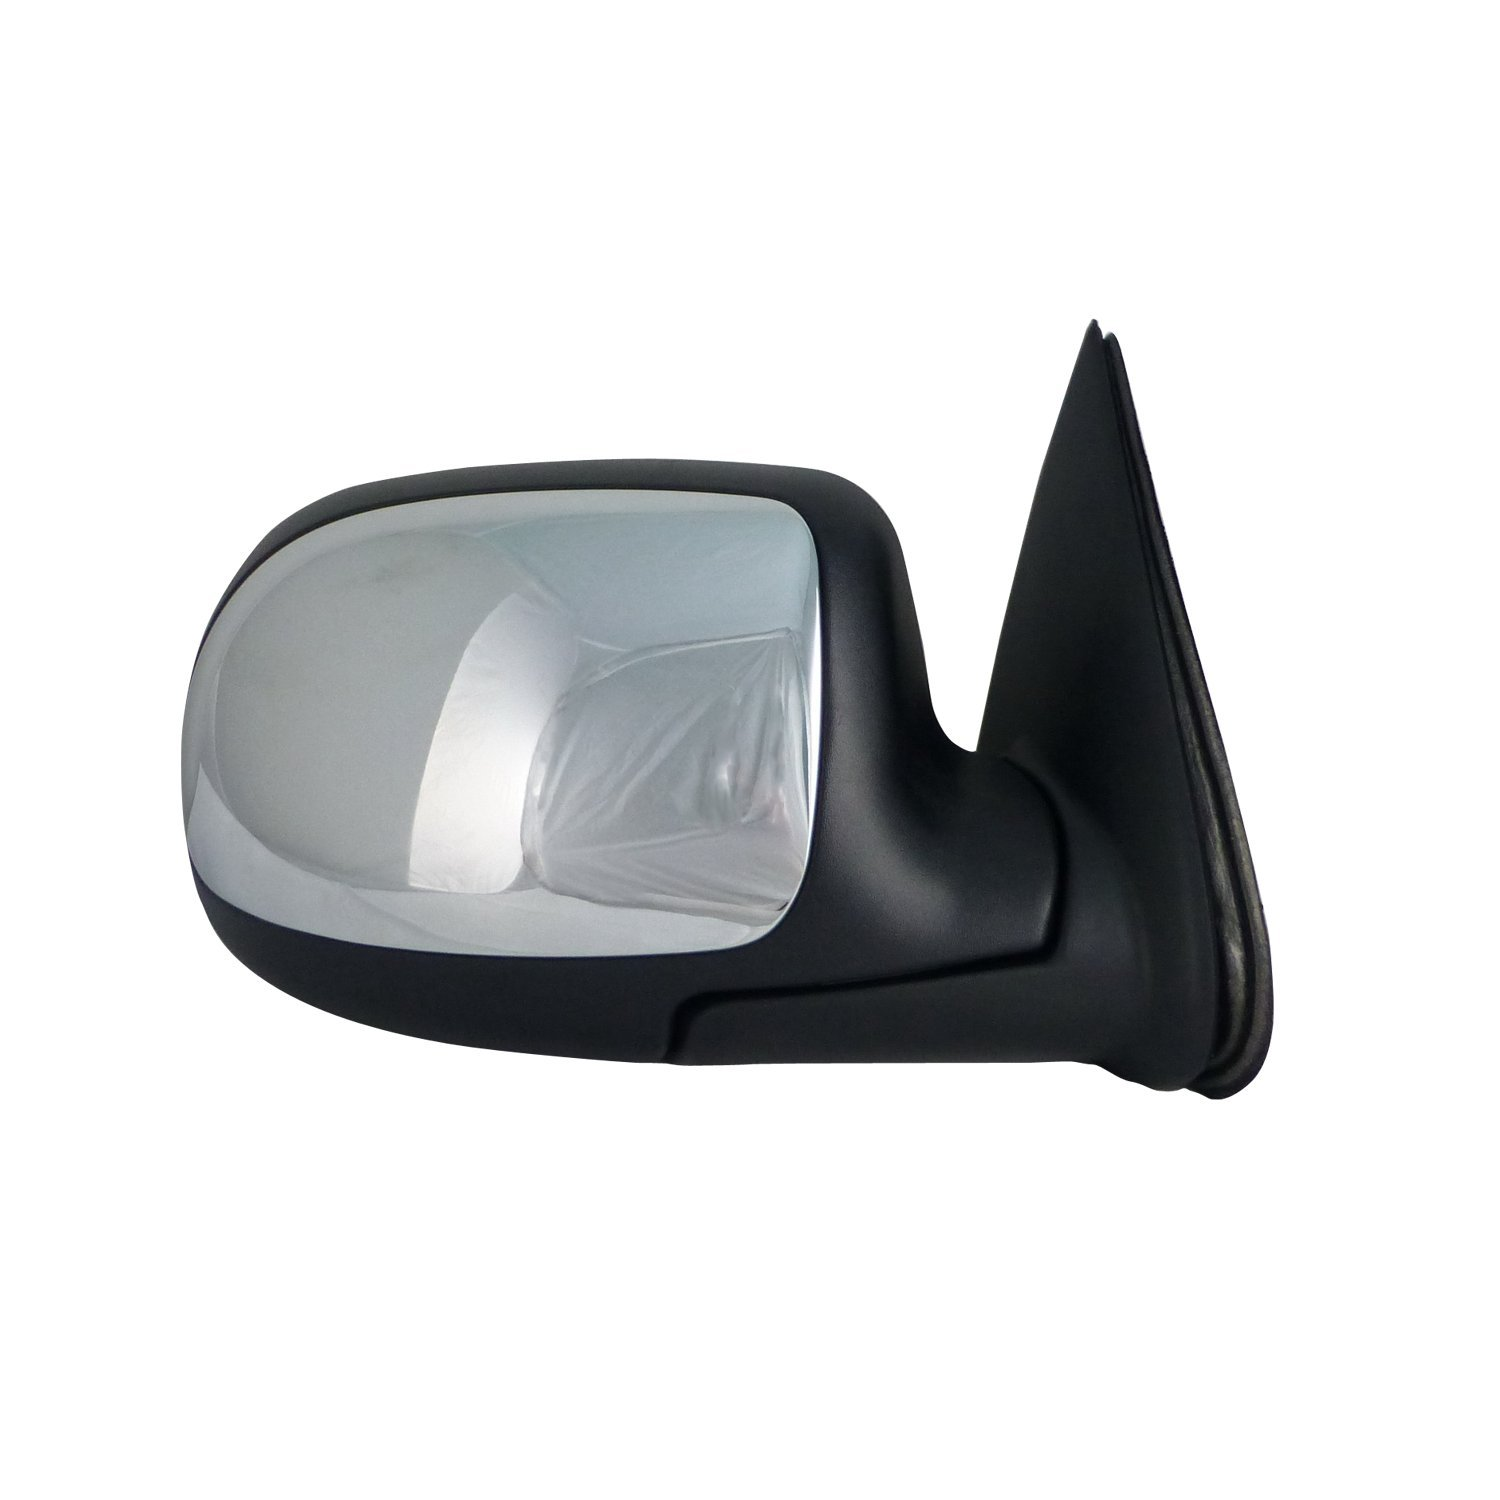 TYC Manual Door Mirror w/ Chrome Cap - RH Side - Replaces OE# 25876715 - 2170611